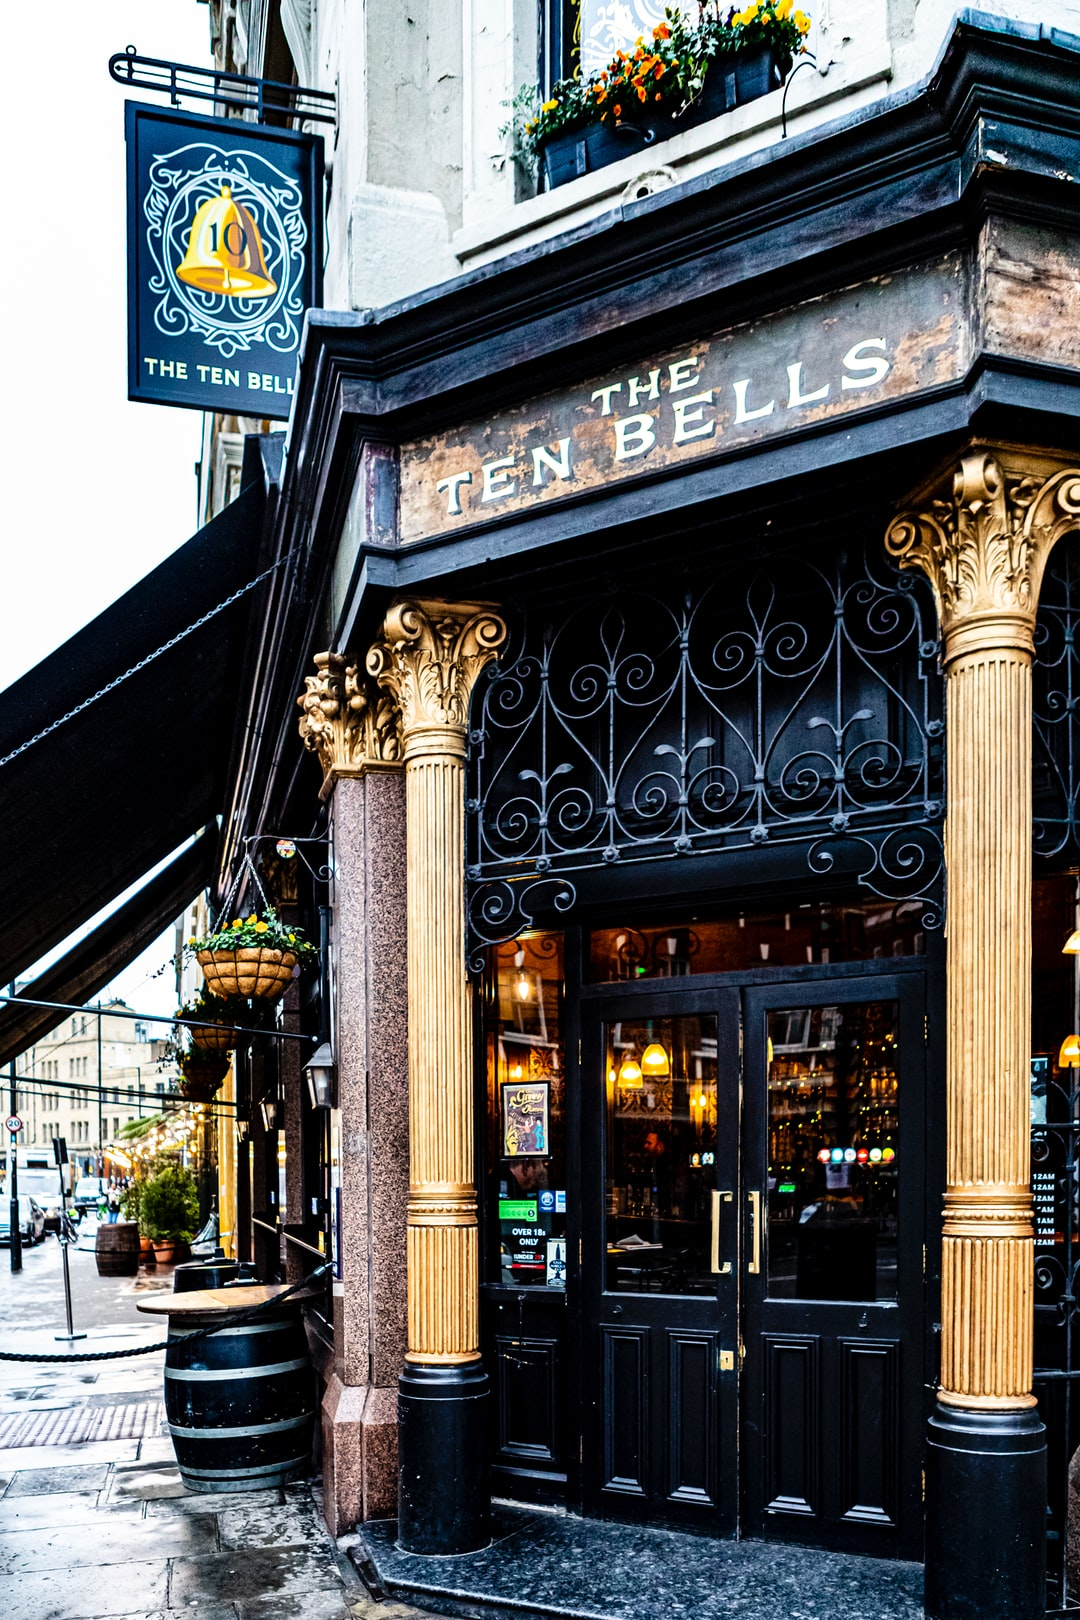 The Ten Bells Pub at Spitalfields, London January 2020. Rumored to be the place where Jack the Ripper visited for drinks.